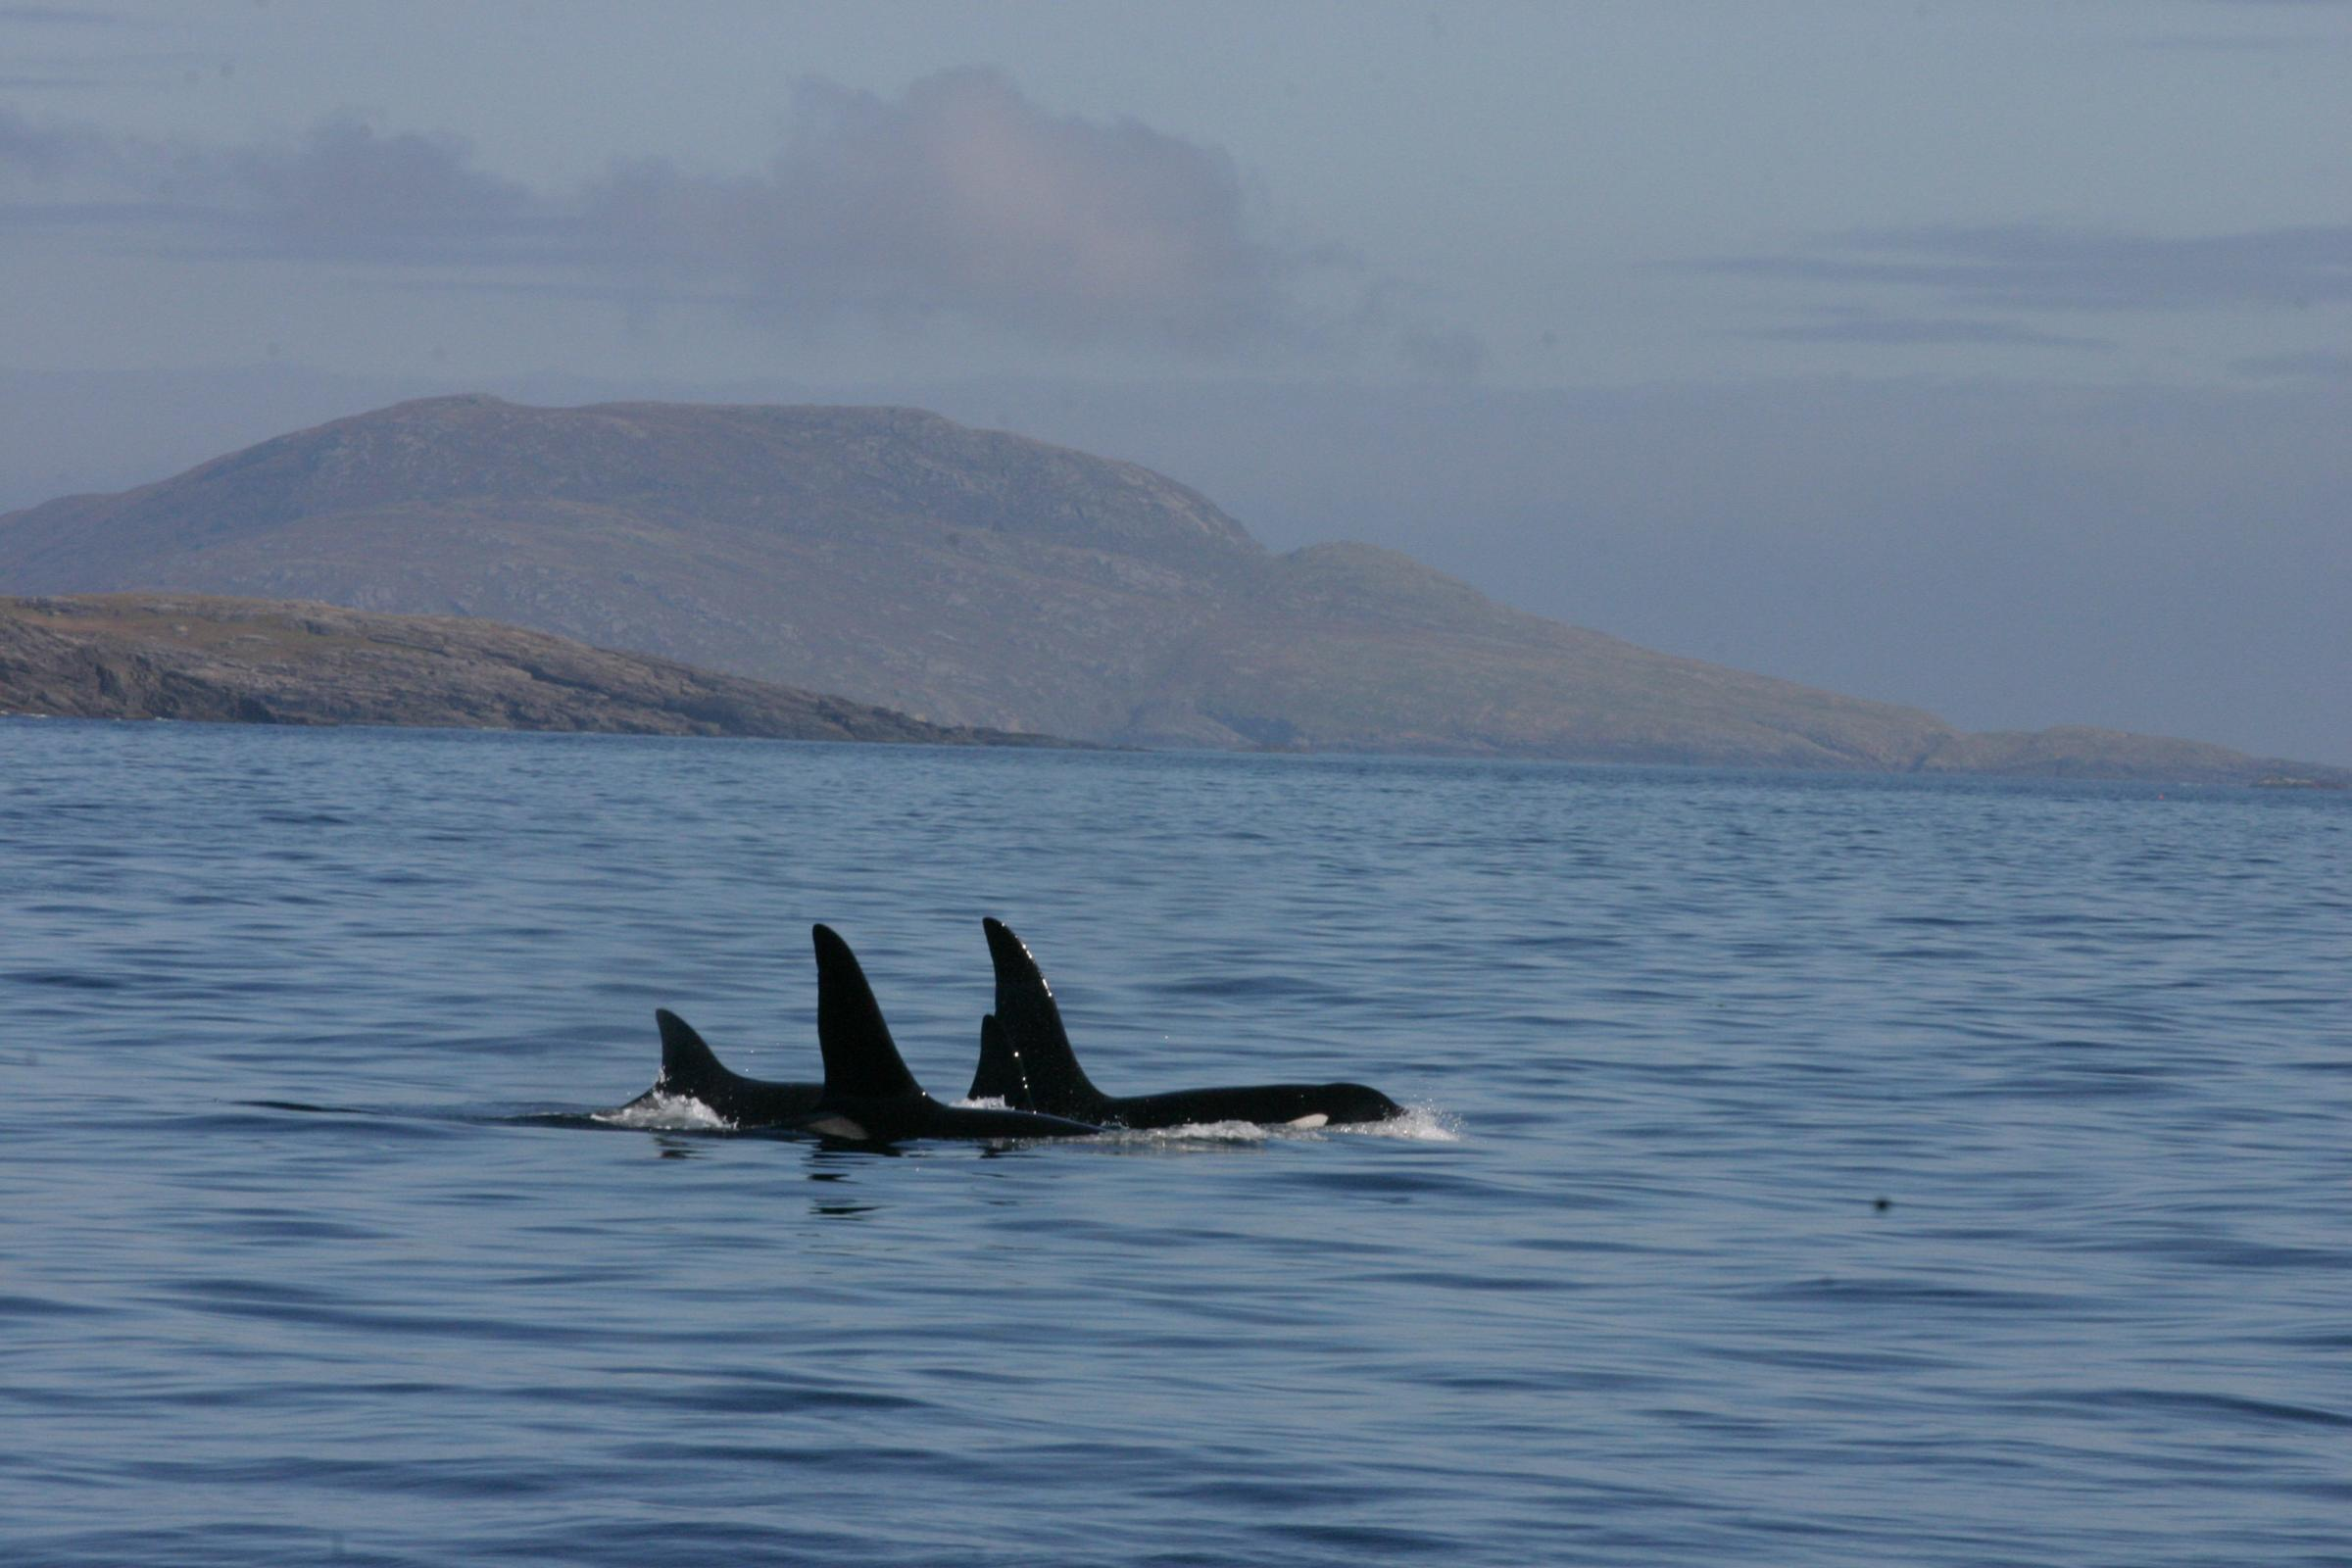 Scotland's only resident killer whale faces extinction due to illegal chemicals in the sea